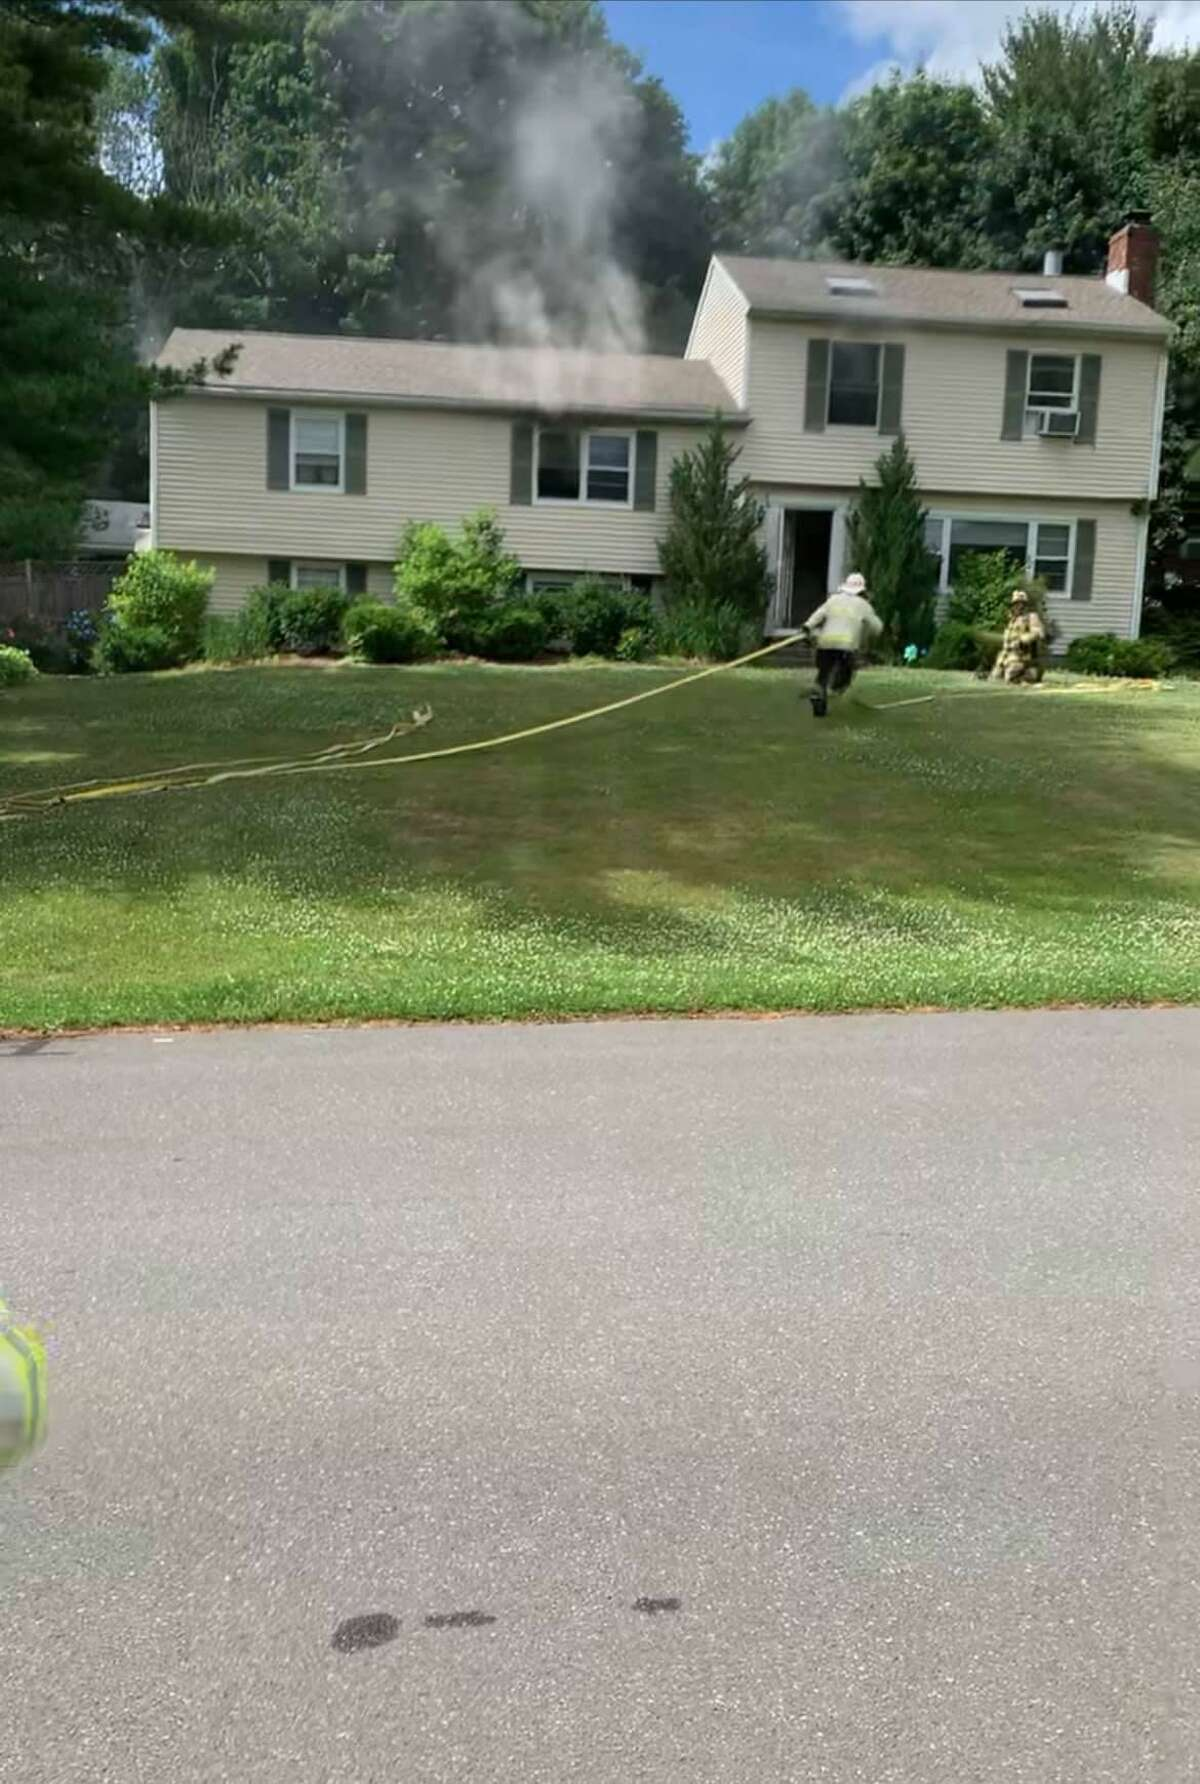 Bethel firefighters responded to a fire in a bedroom at a Quaker Ridge Road home on Sunday, July 4, 2021.